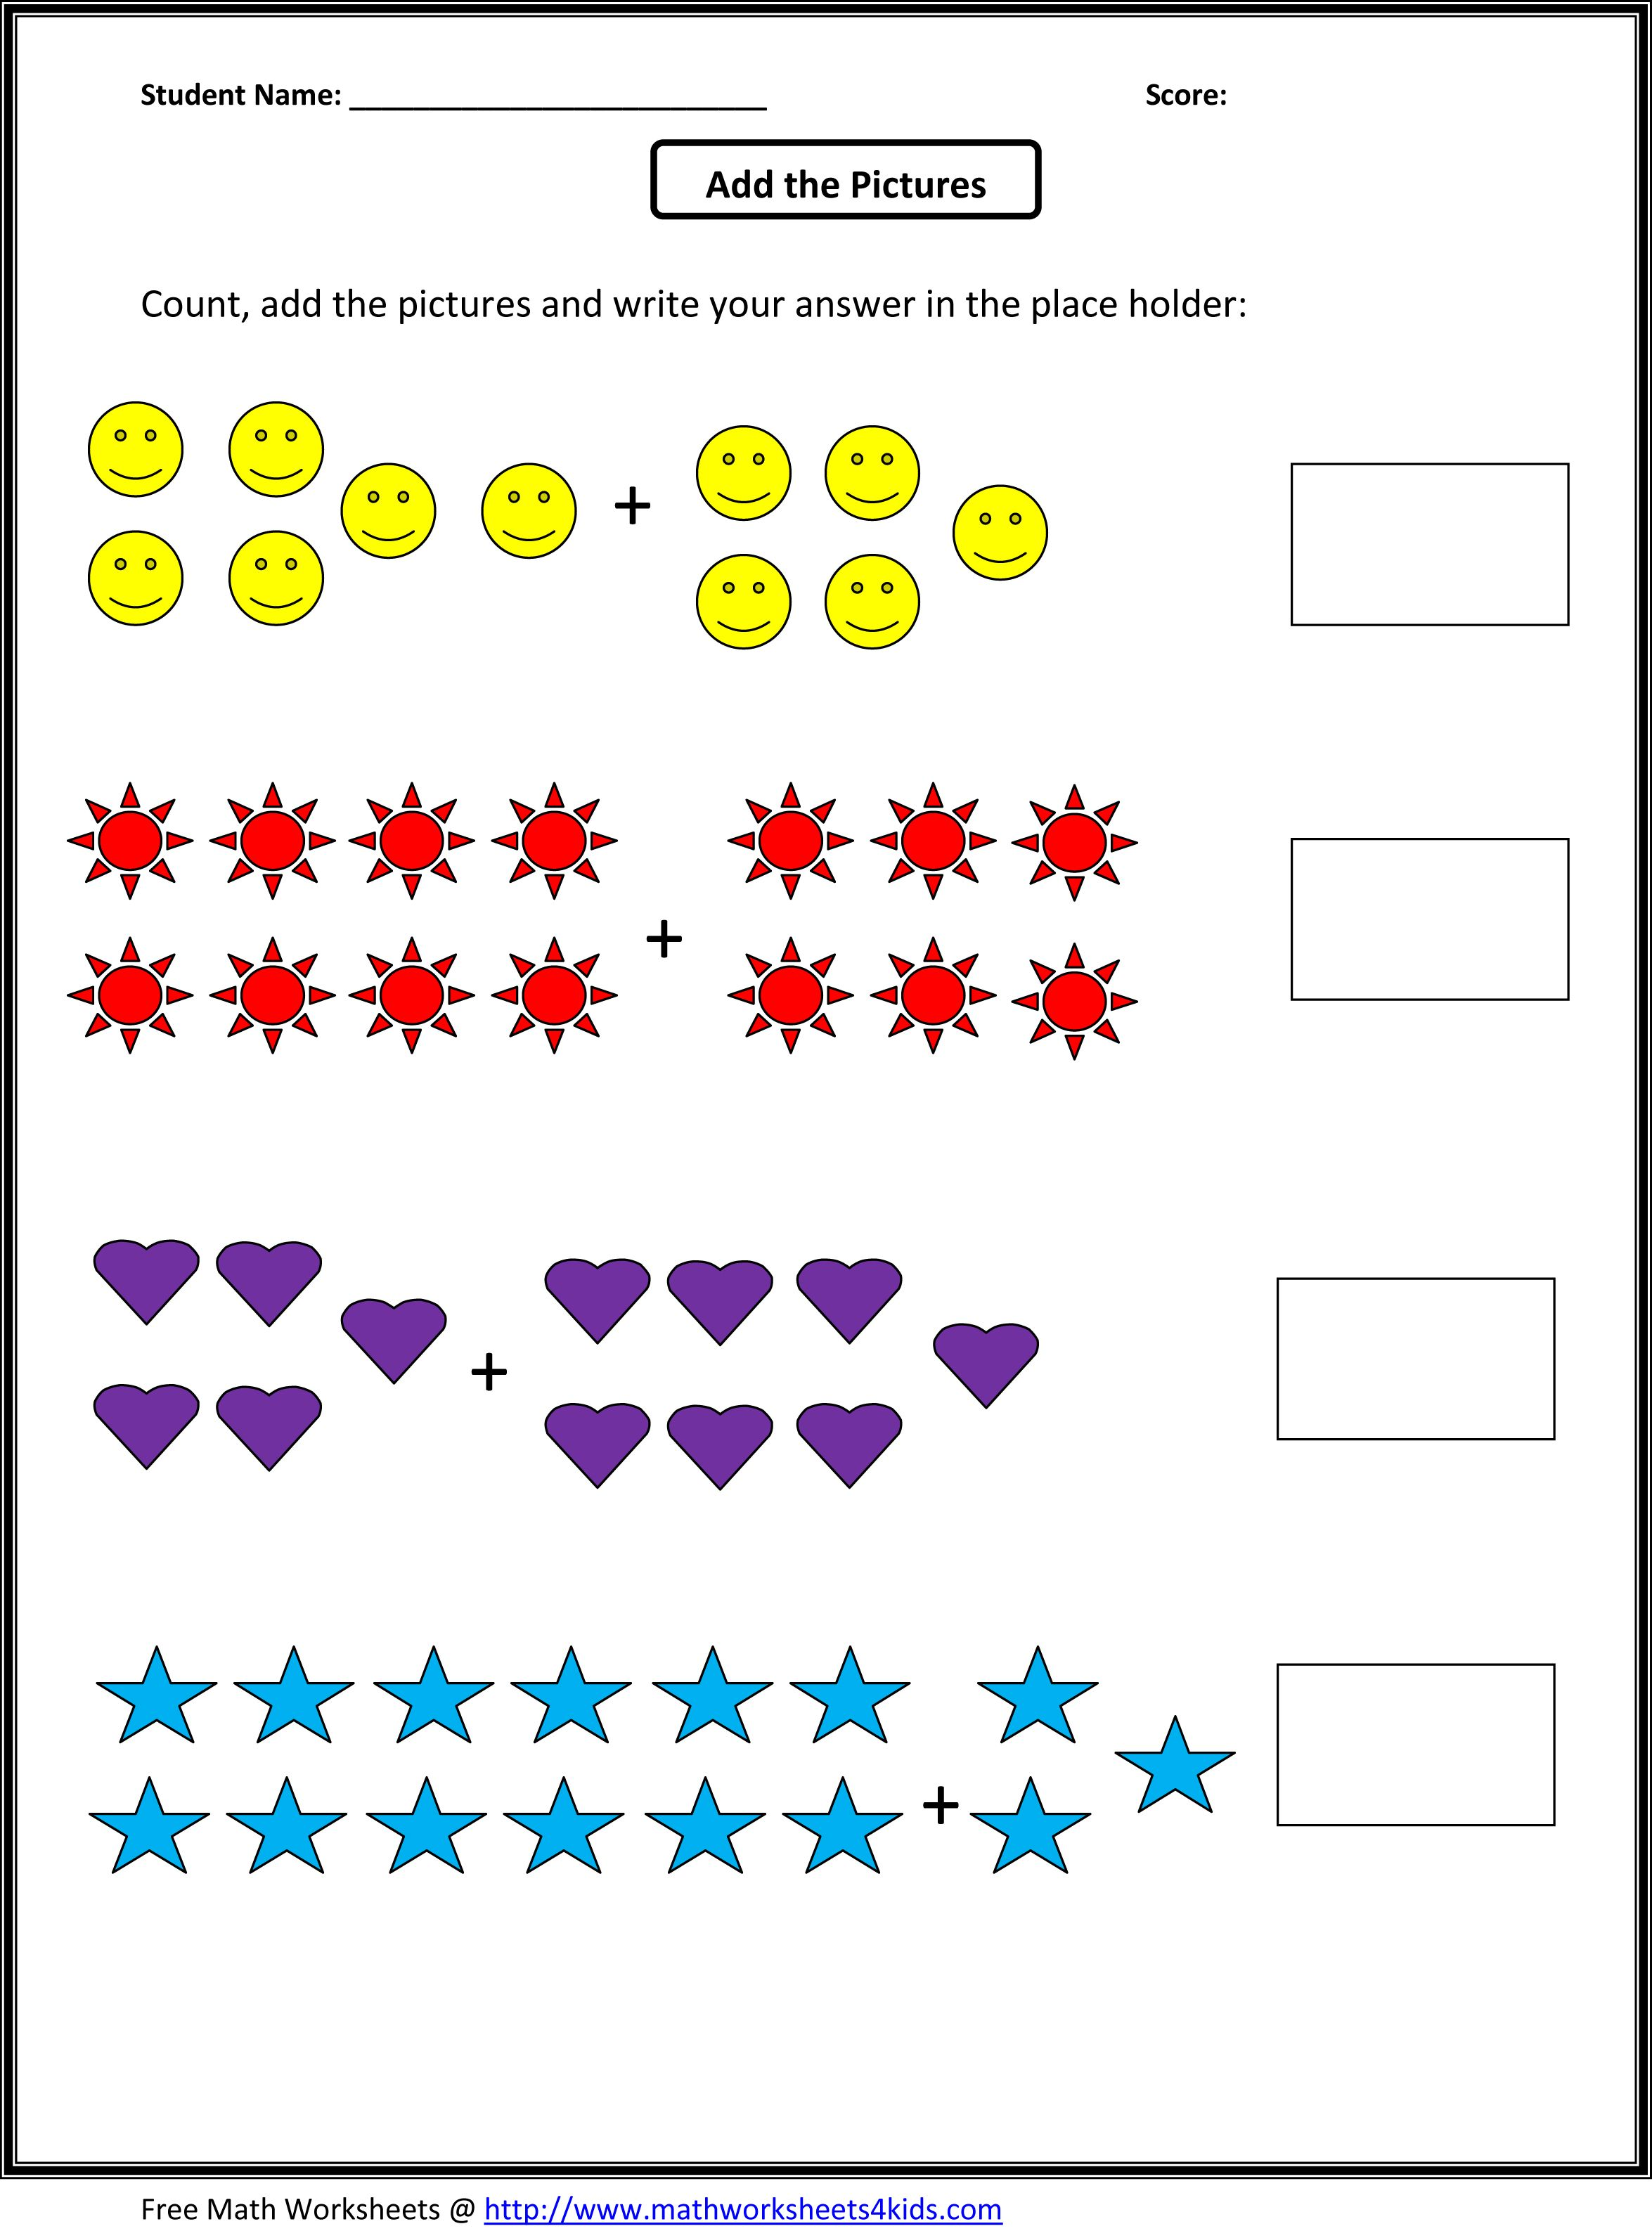 grade 1 addition math worksheets – First Grade Math Worksheets Free Printables